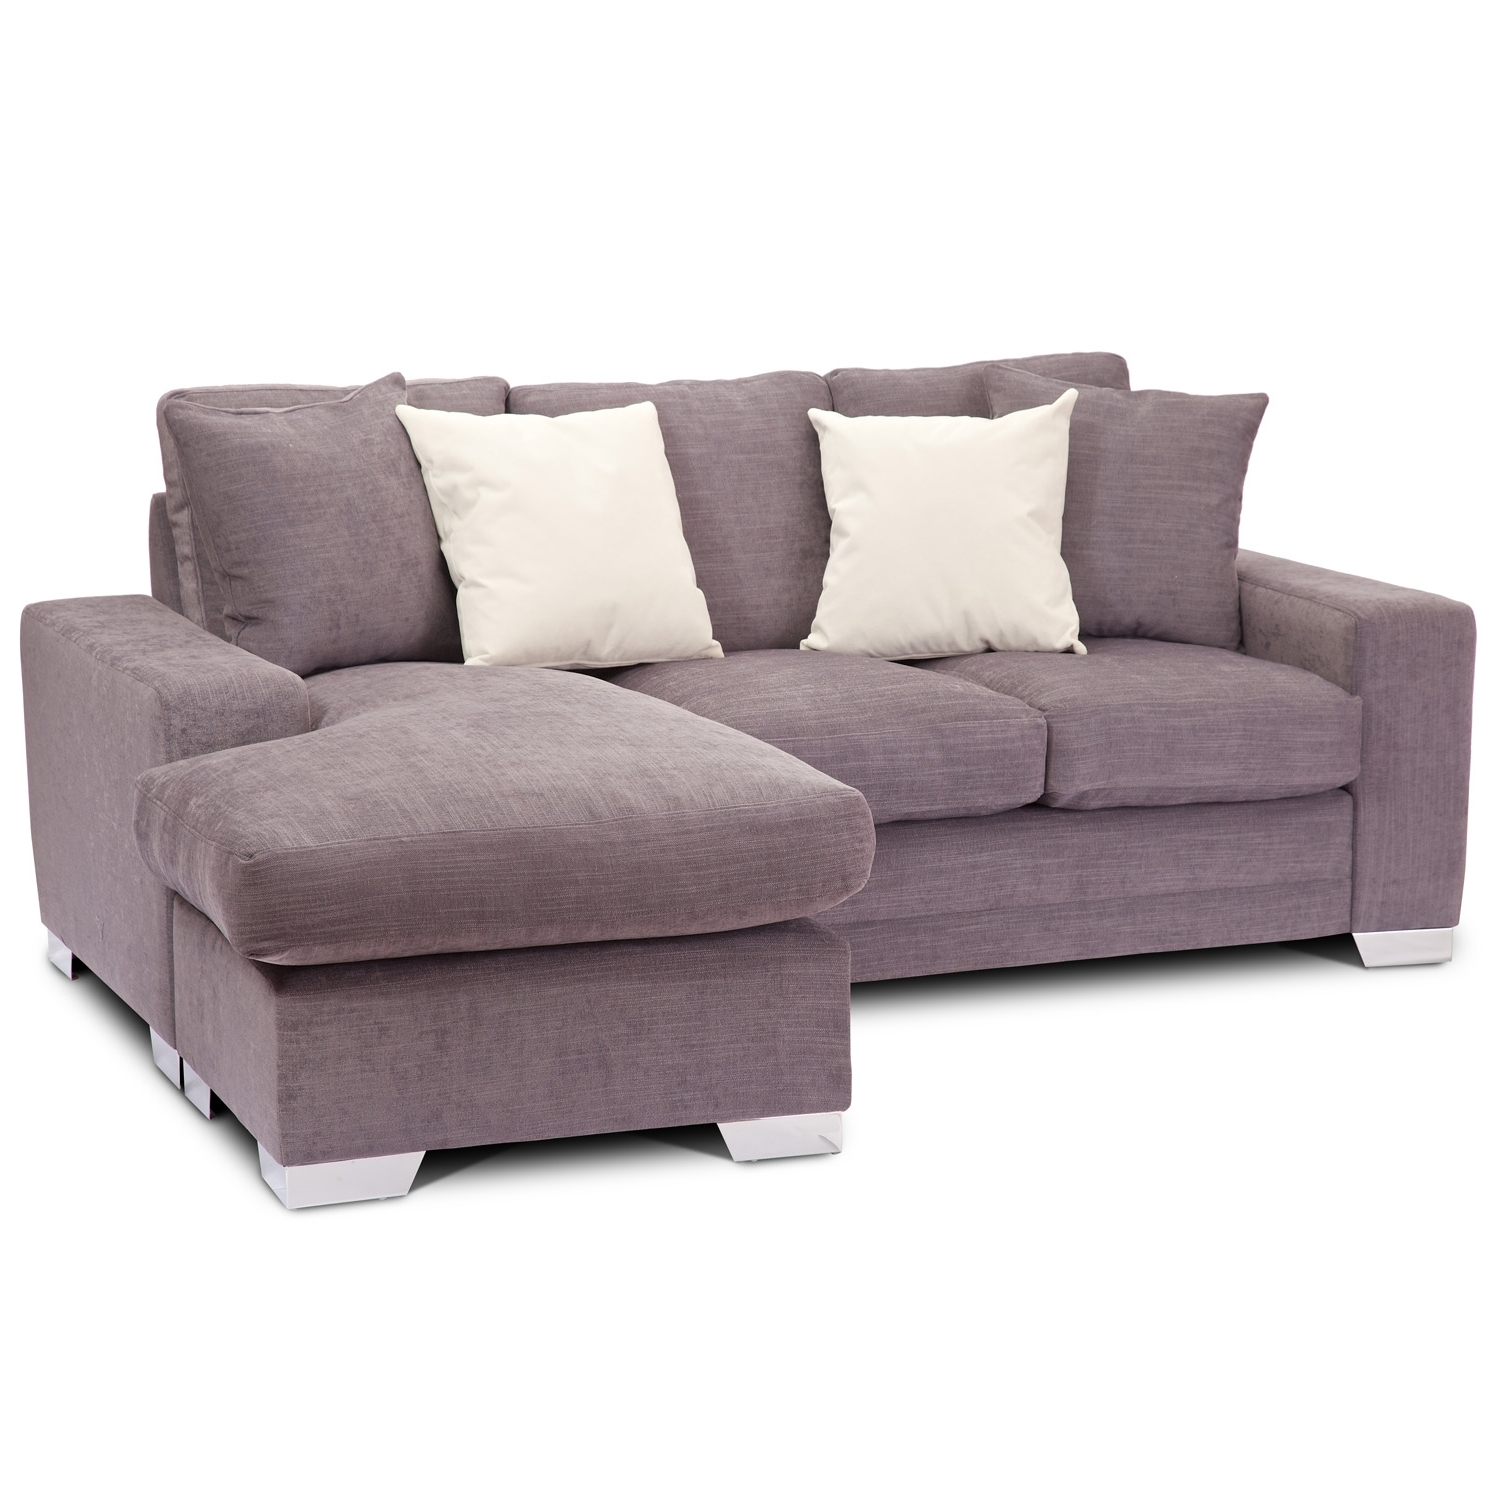 Trendy Chaise Lounge Sofa Beds Pertaining To Sofas: Classic Meets Contemporary Chaise Sofa Bed For Ideal Living (View 11 of 15)